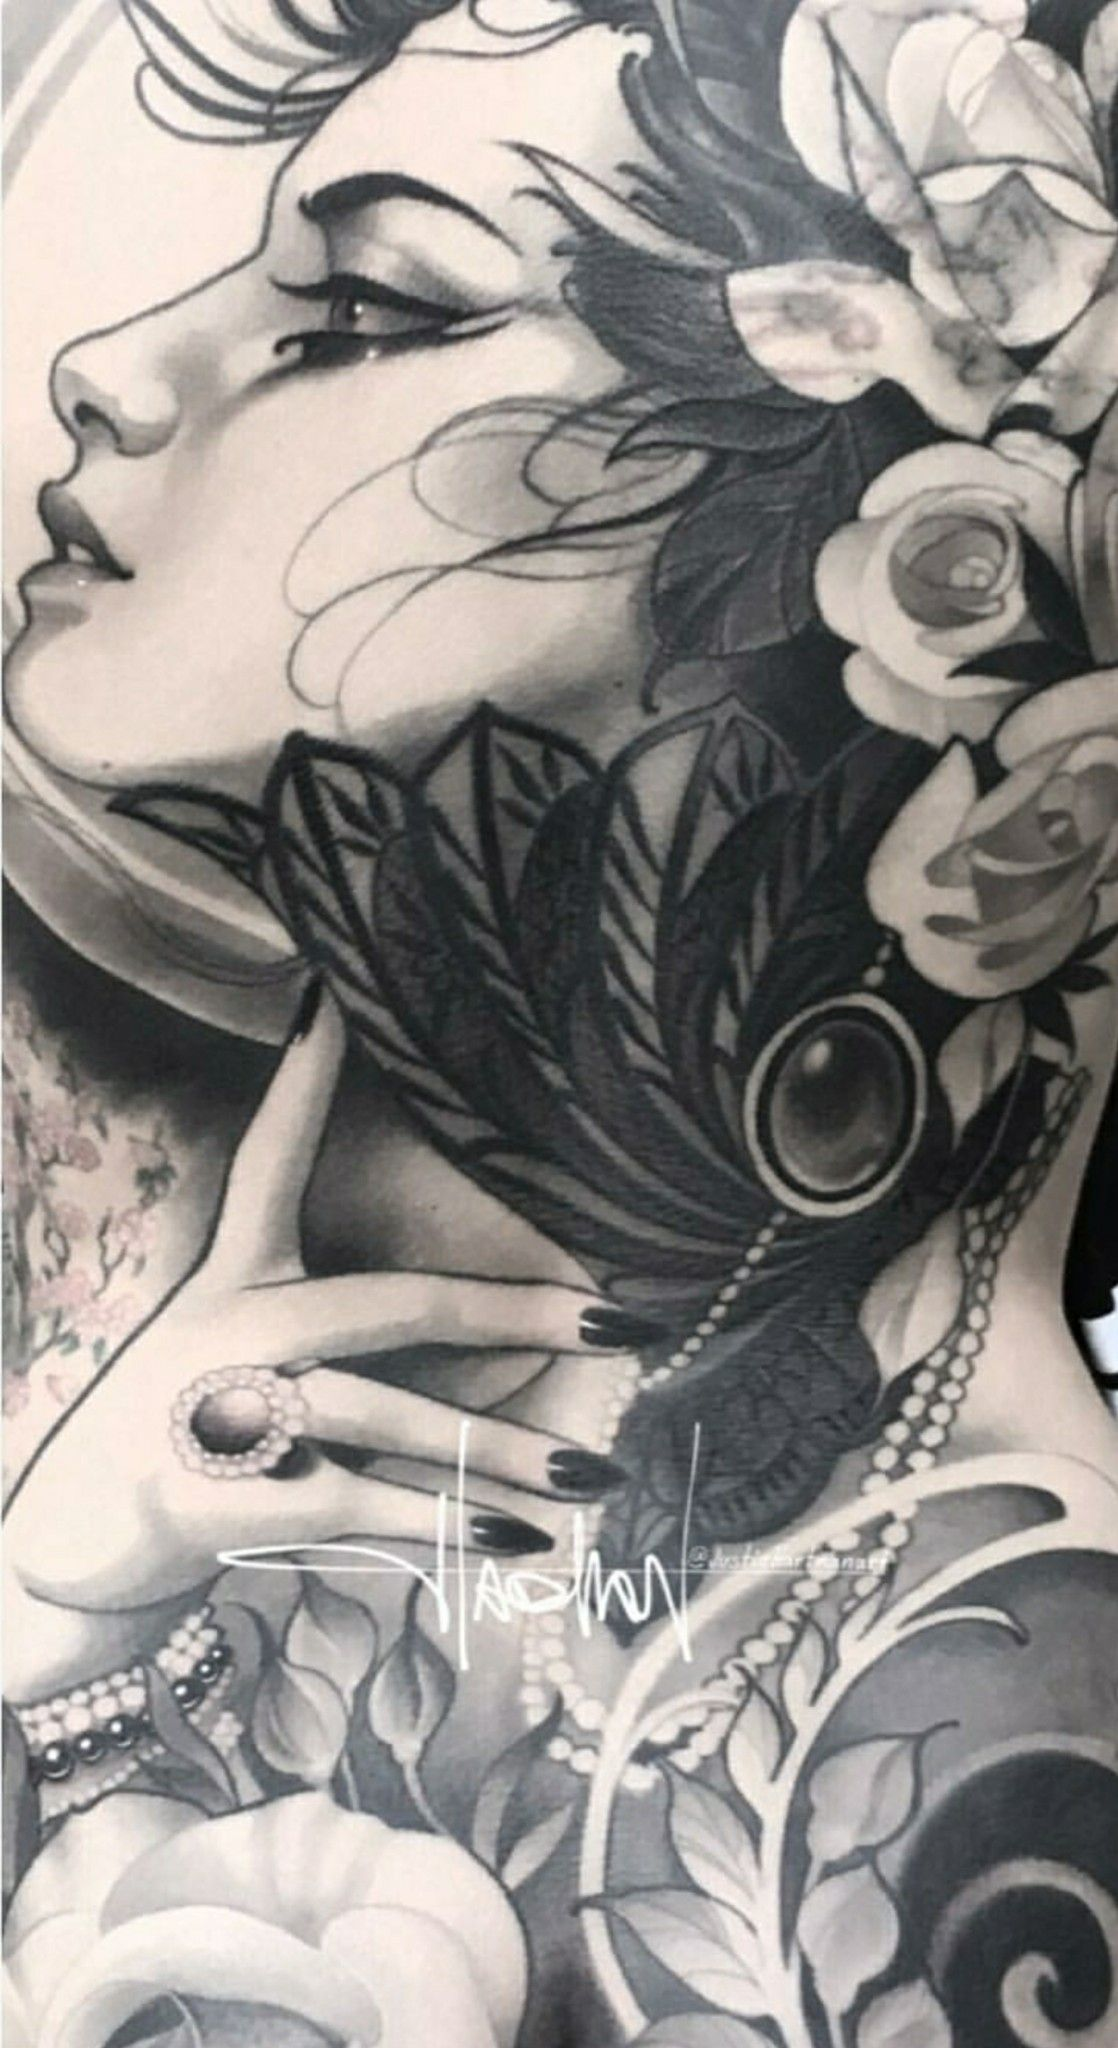 59ebbb15a Neo Traditional Tattoo, Chicano Art, Ink Art, Female Art, Character Art,